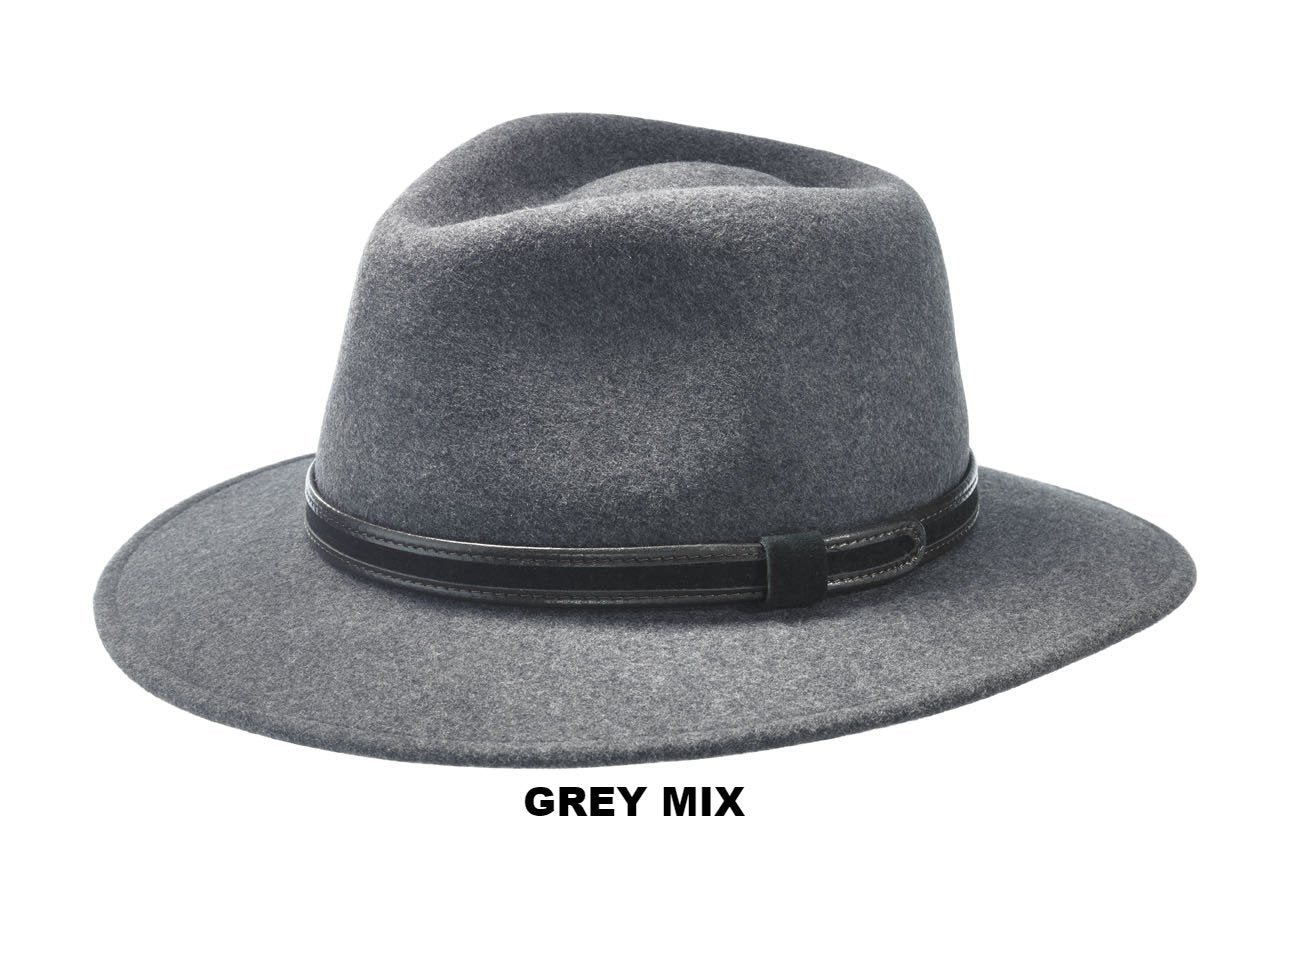 31b7c18ad53 THE WALKER - WOOL FELT HAT WITH A DOWNTURN BRIM AND LEATHER HAT BAND FROM  ITALY